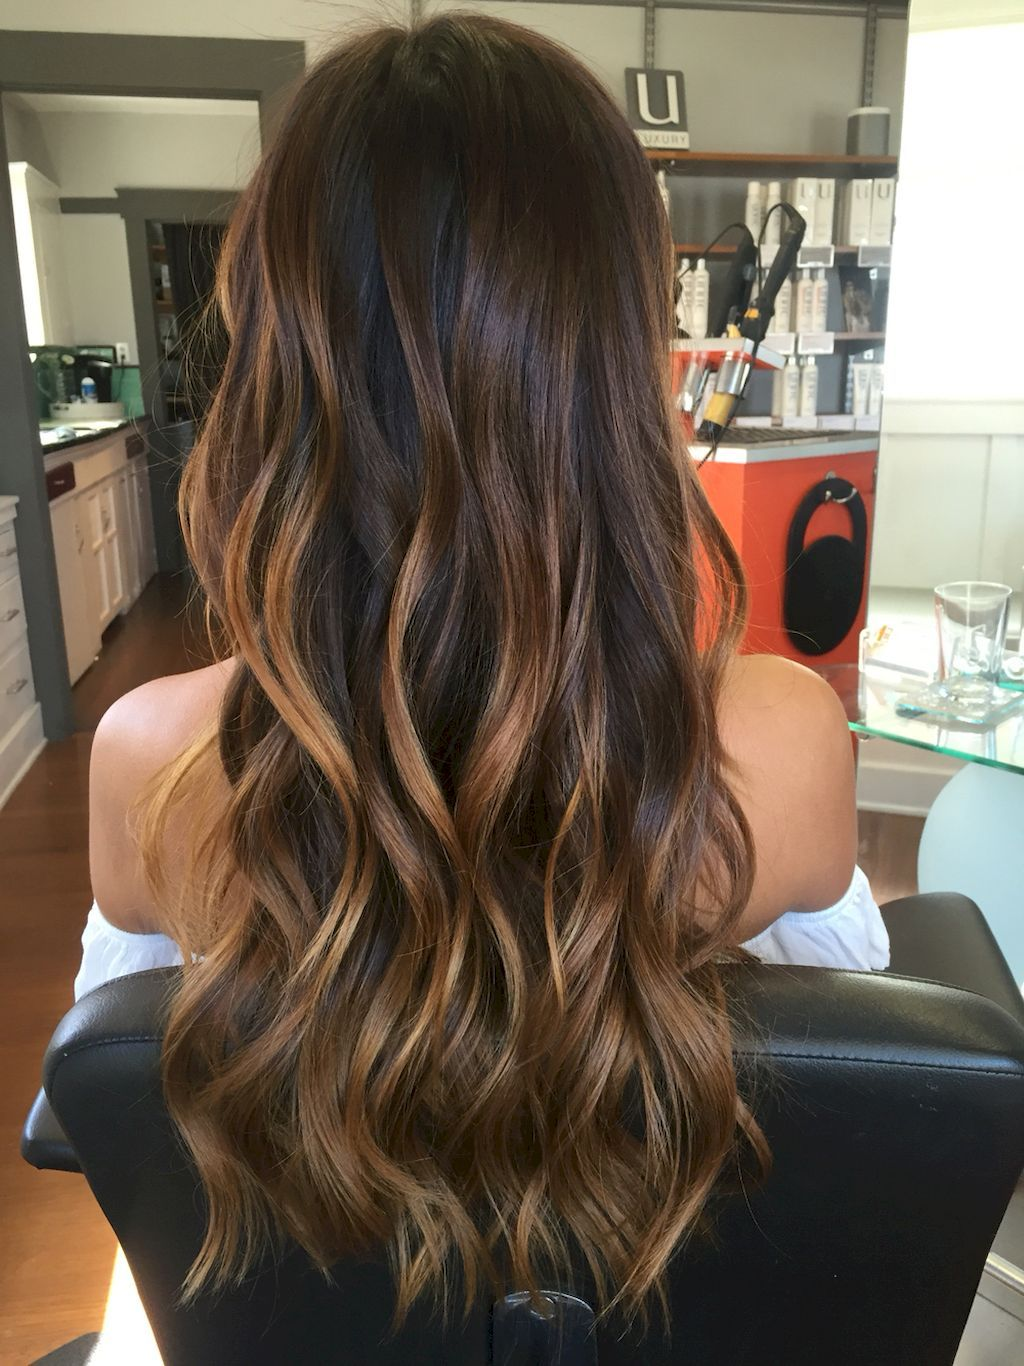 75+ Hottest Balayage Hair Color Ideas for Brunettes - BiteCloth.com | Hair  styles, Balayage hair, Long hair styles